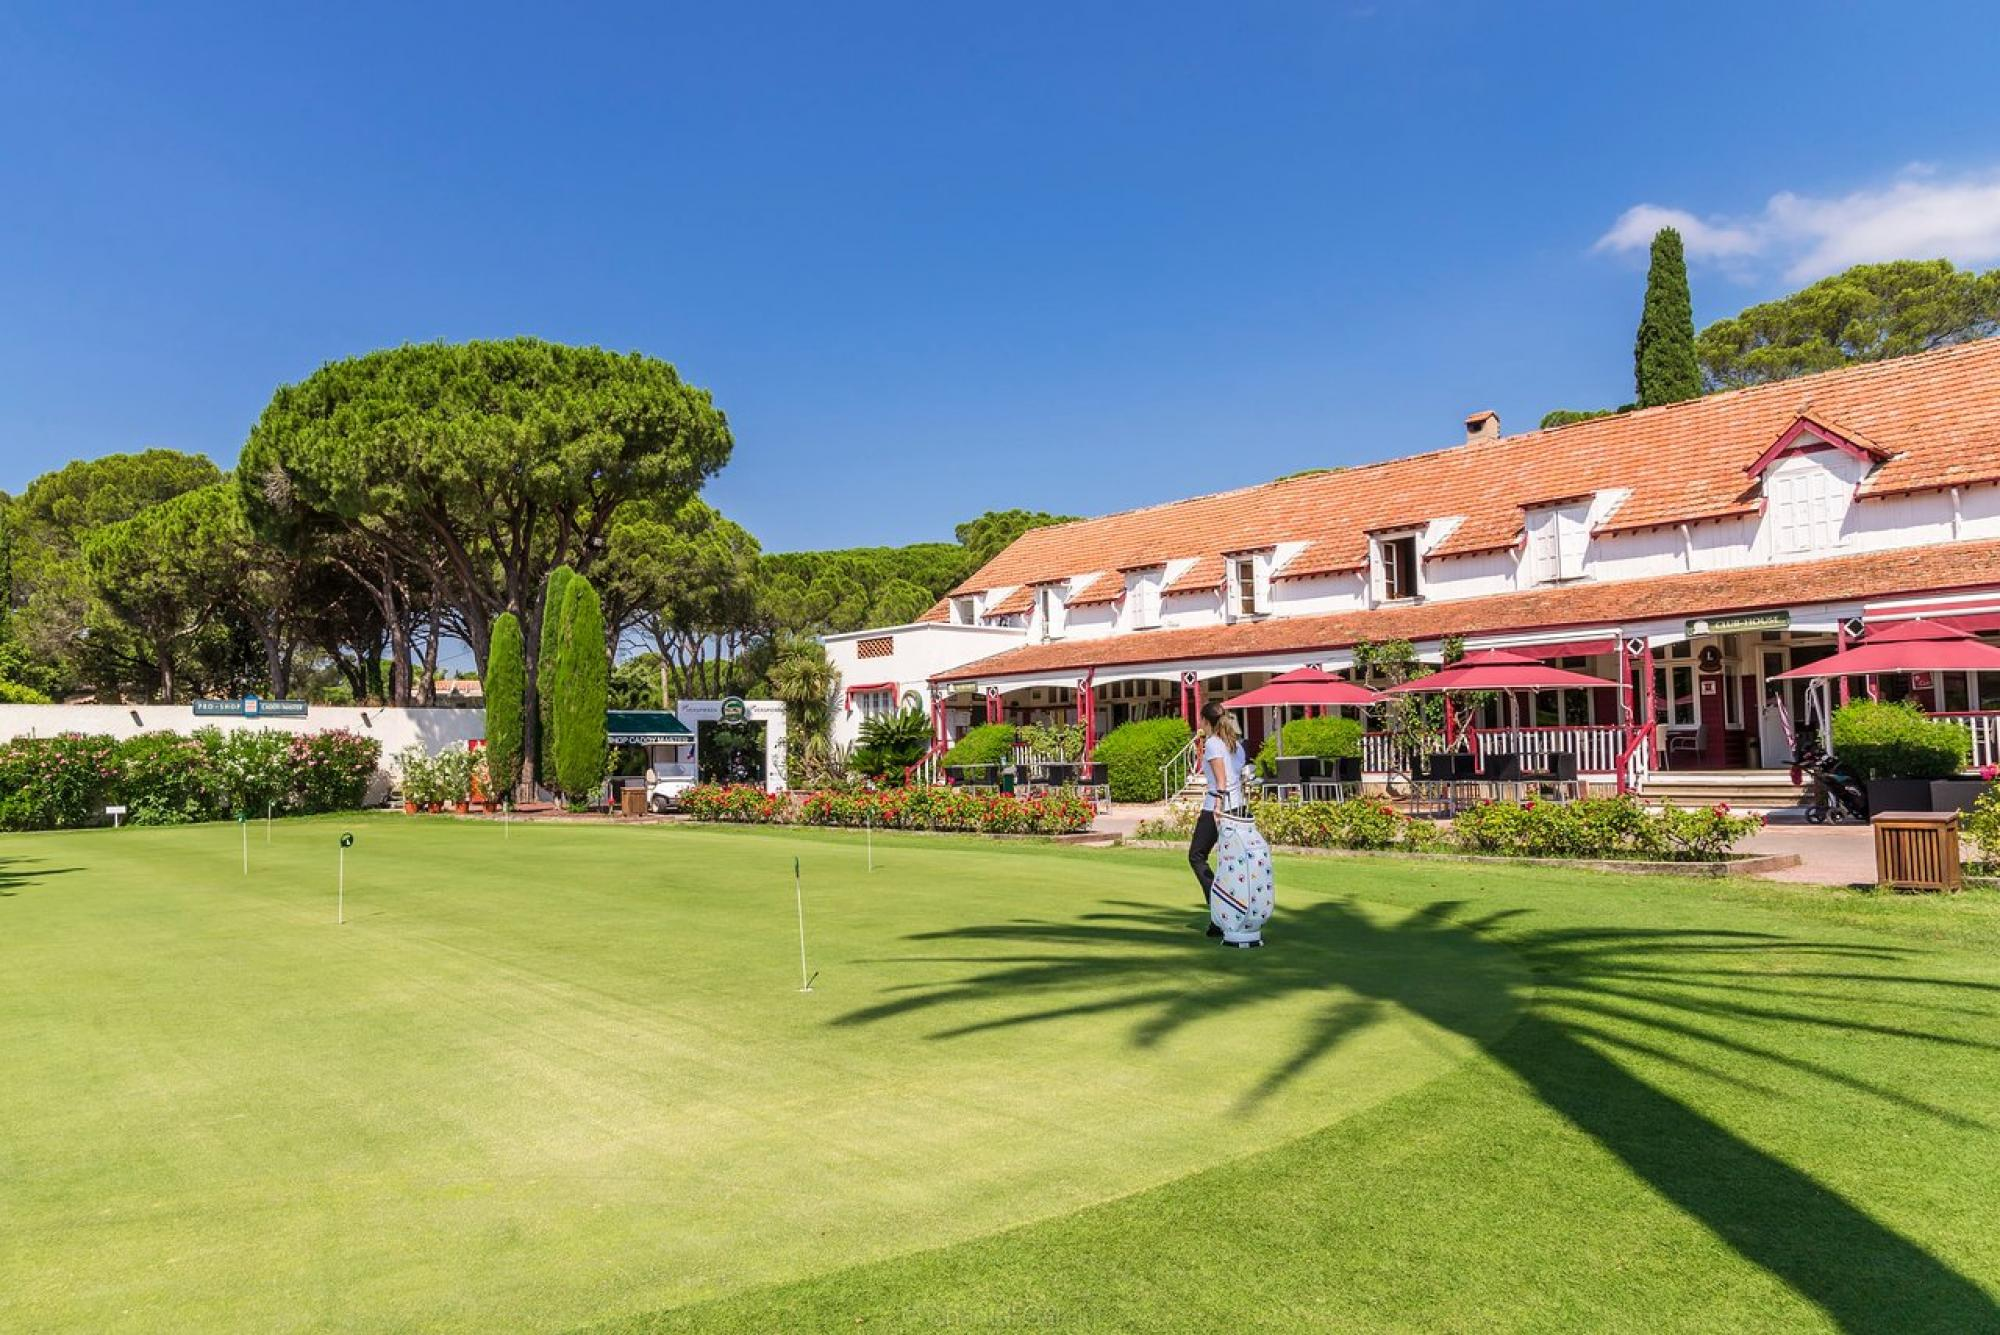 All The Golf de Valescure's beautiful golf course in striking South of France.